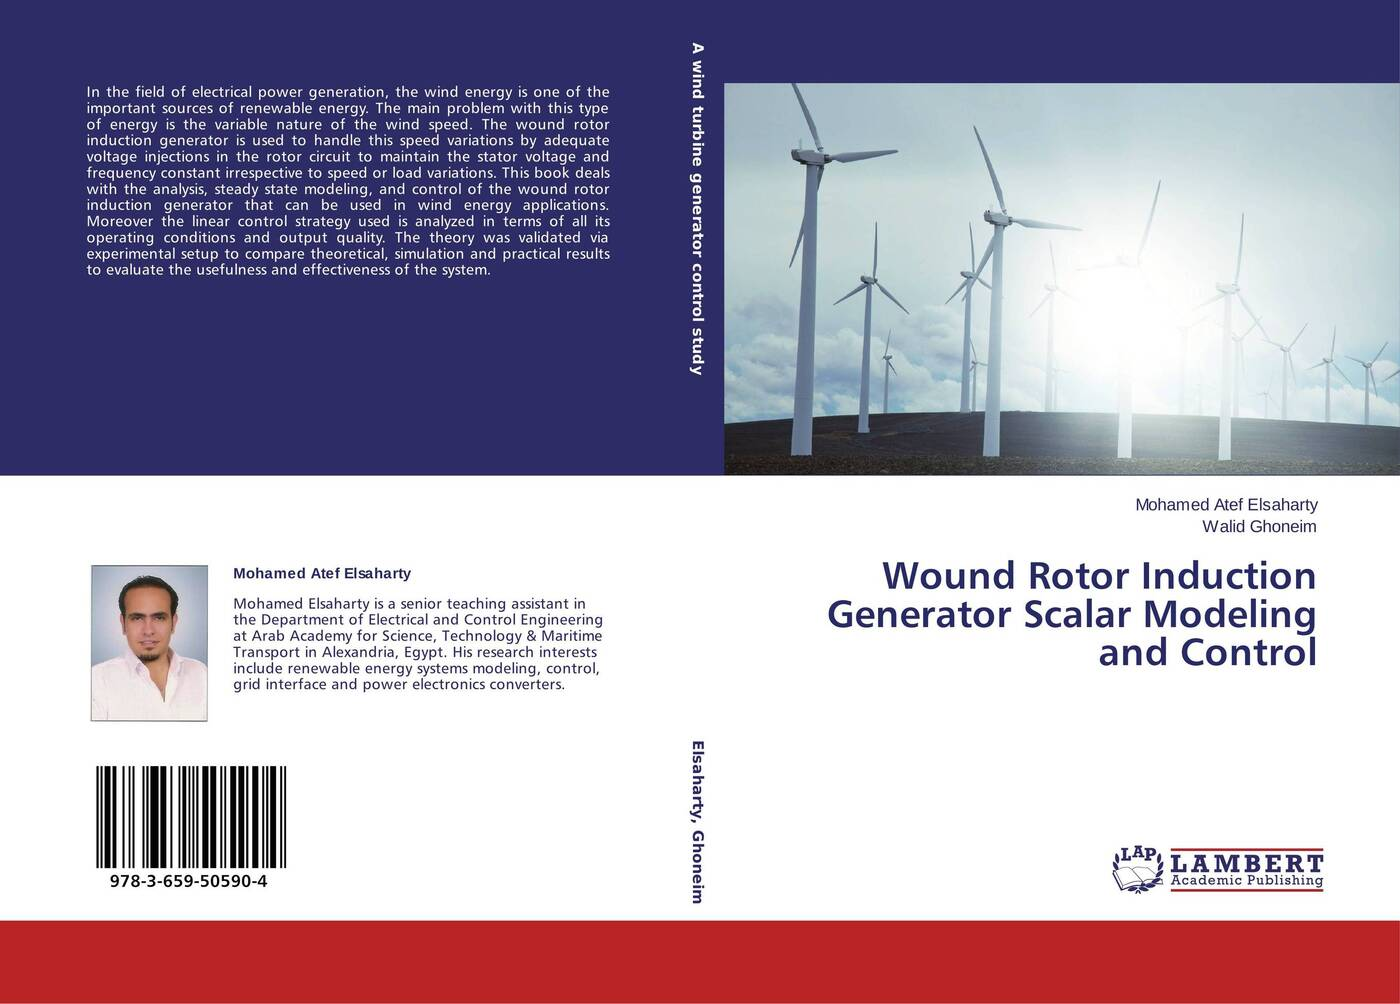 Mohamed Atef Elsaharty and Walid Ghoneim Wound Rotor Induction Generator Scalar Modeling and Control modeling energy–economy interactions